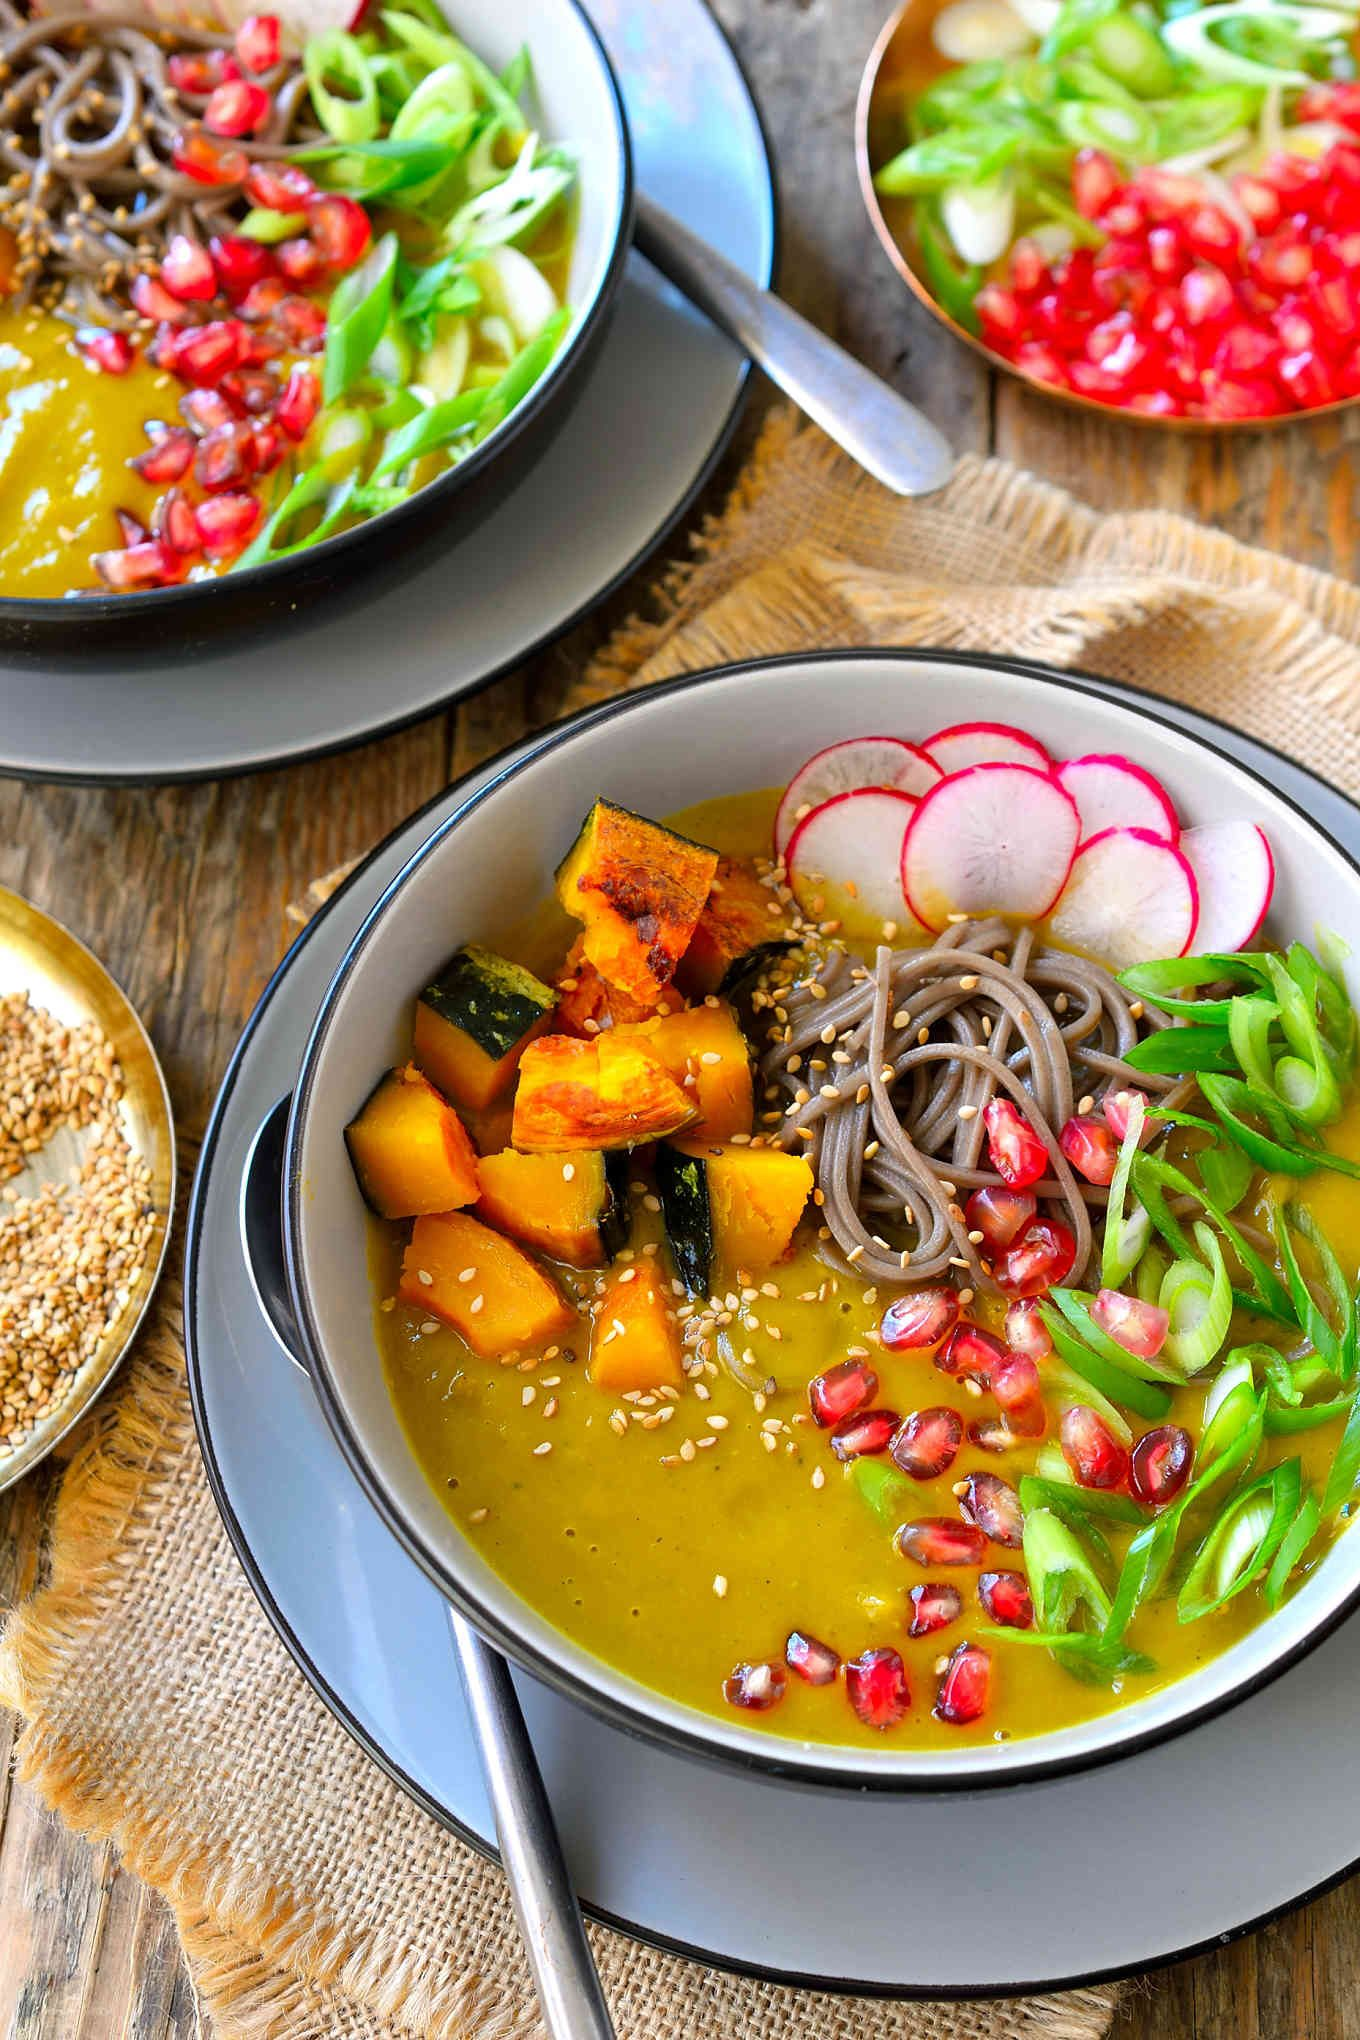 This roasted kabocha squash soup with soba is a whole meal in a bowl. Sweet winter kabocha squash with nutty soba noodles, crunchy pomegranate seeds and spicy radish slices combine in a warm, comforting soup that is perfect for a chilly fall or winter evening.